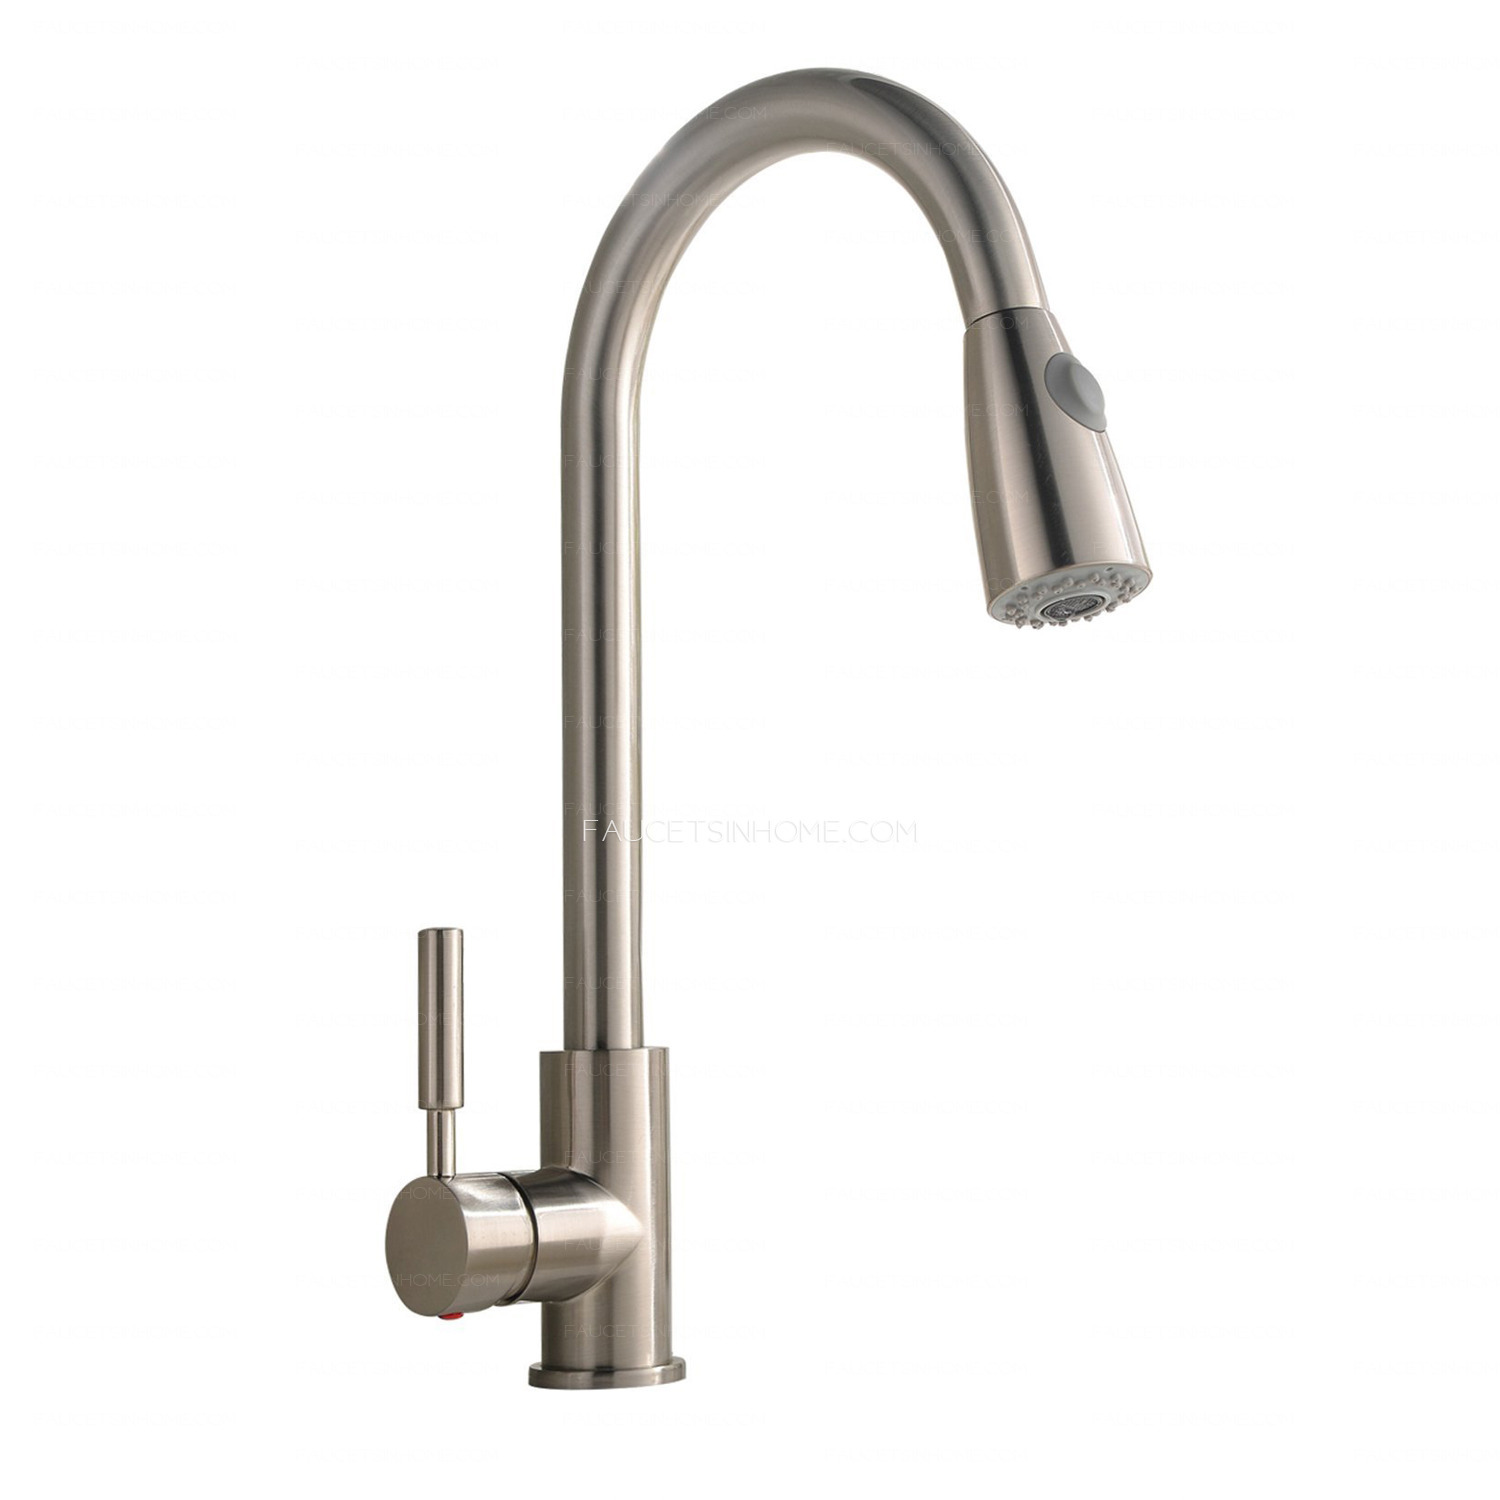 Brushed Nickel Rotatable Brass Pull Down Commercial